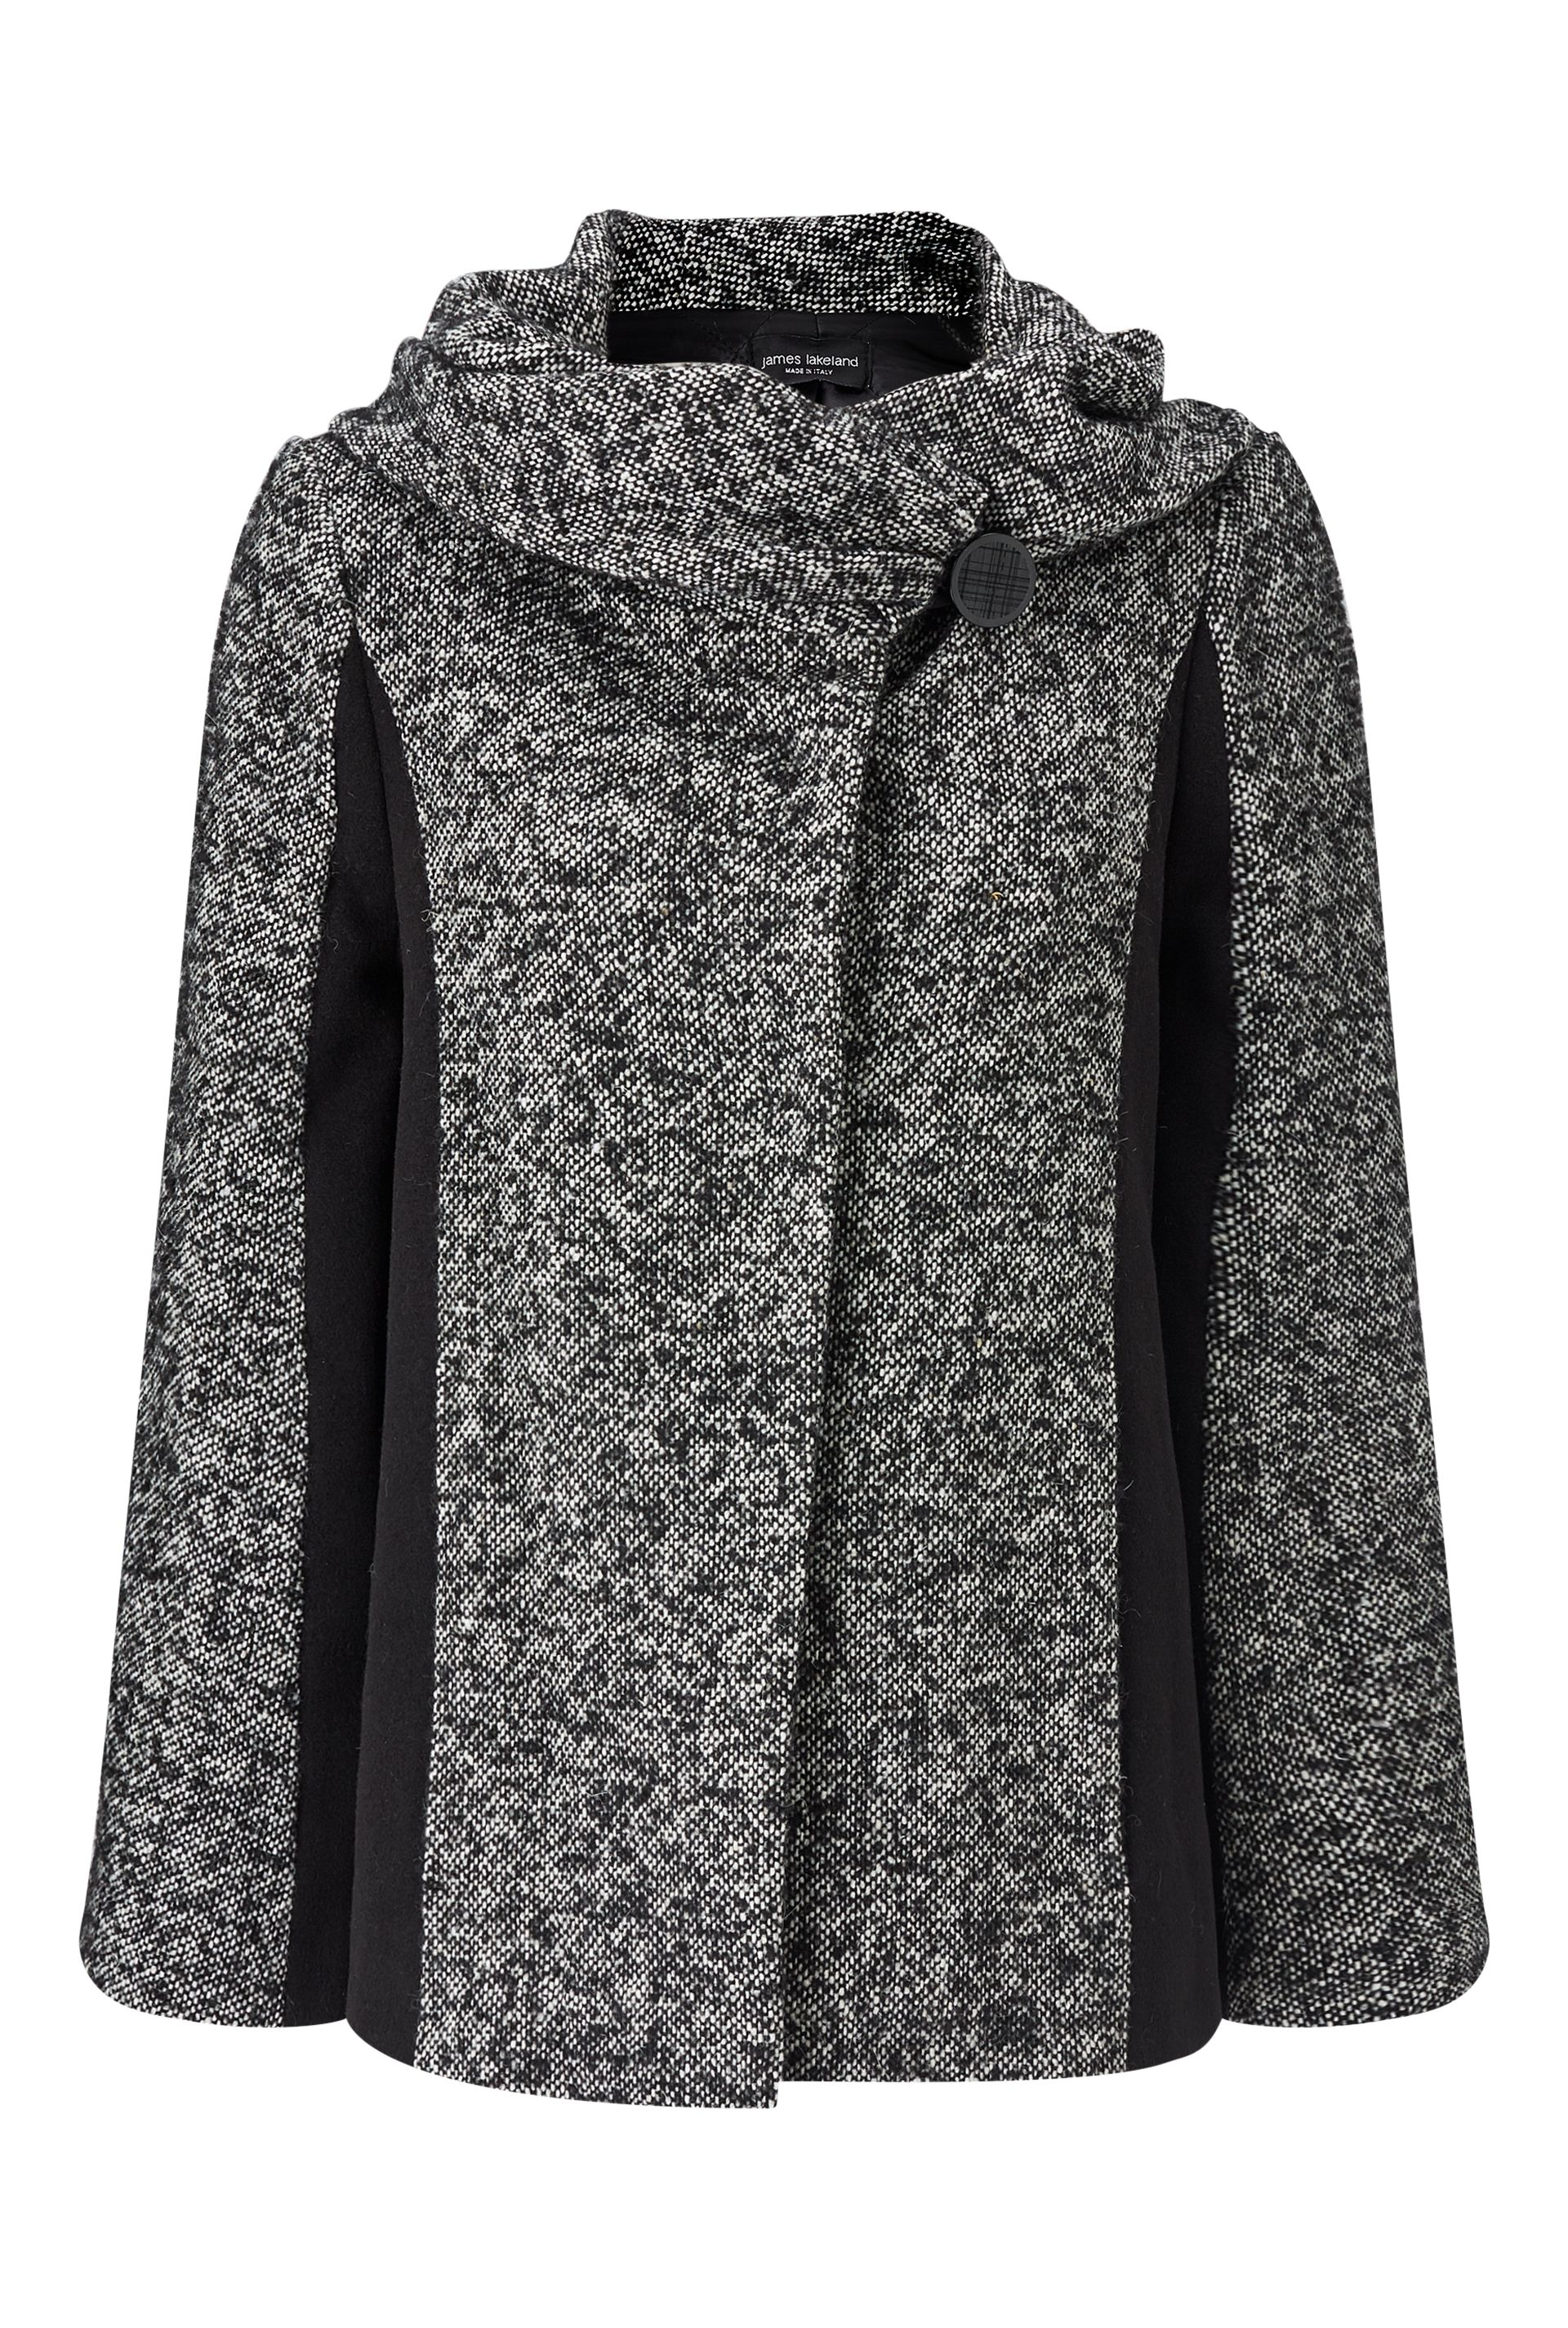 James Lakeland Salt And Pepper Coat, White